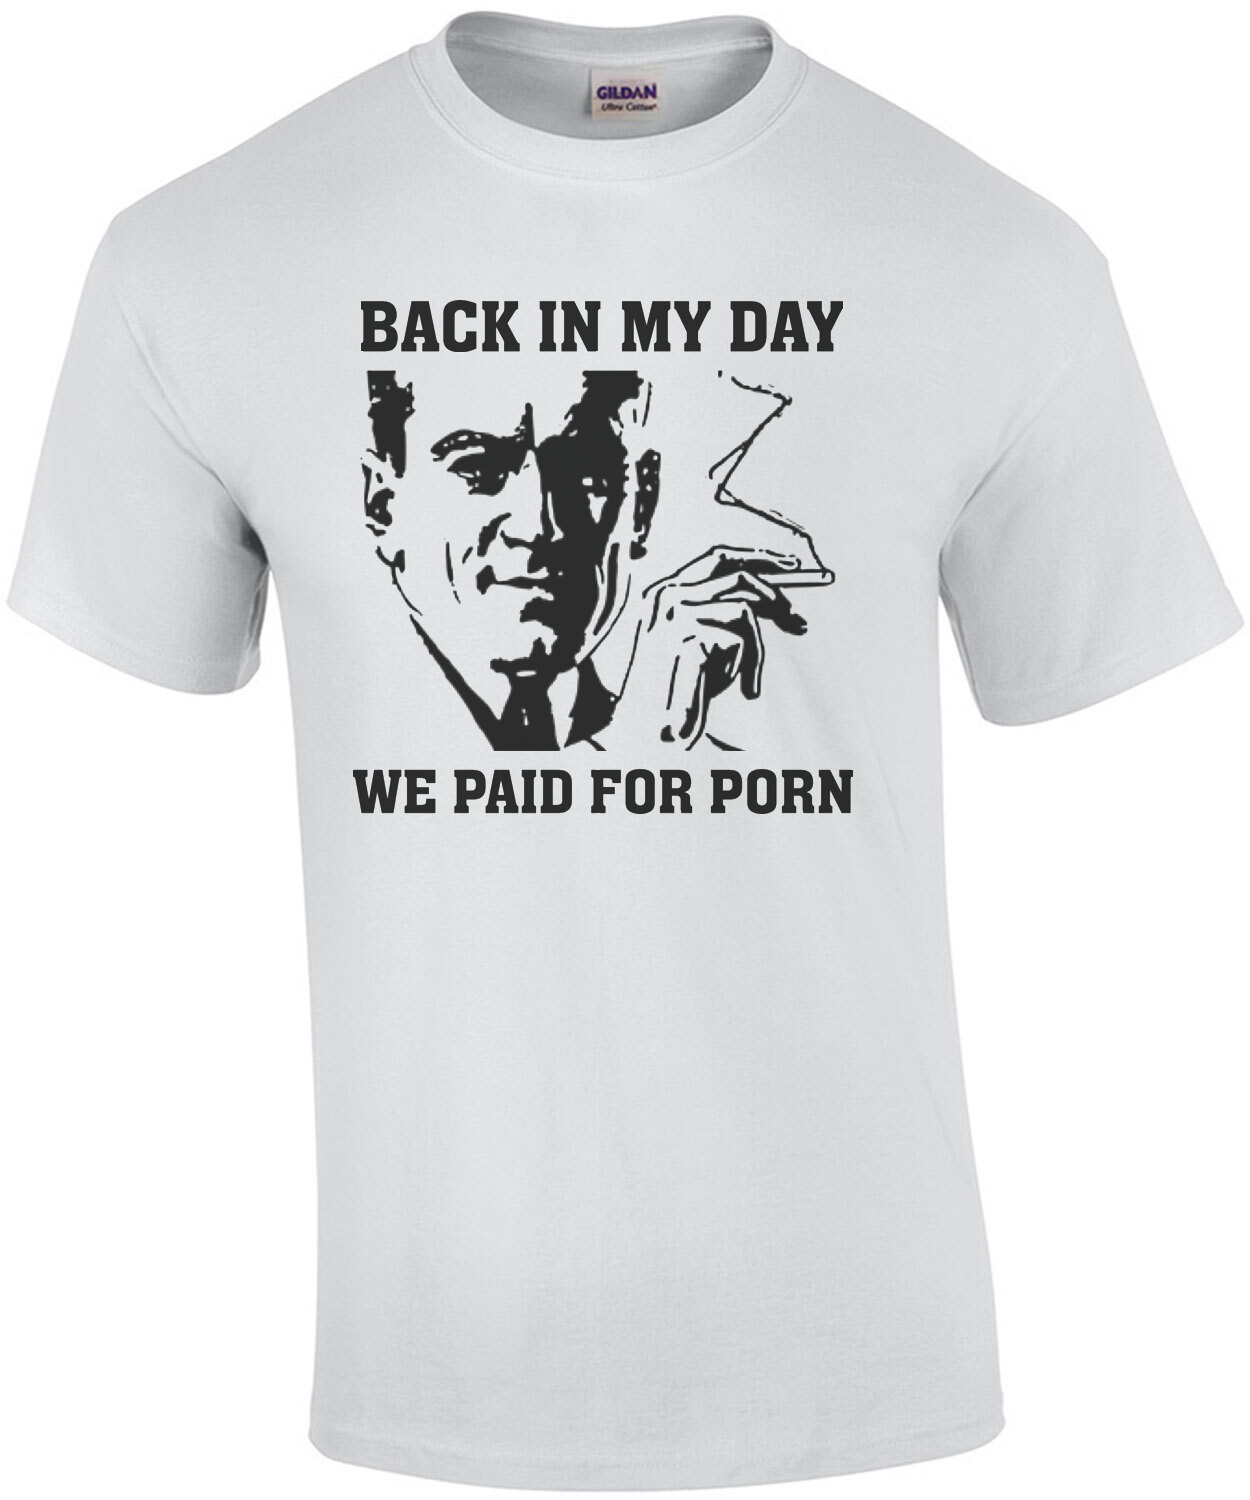 Back in my day - we paid for porn - vintage retro sexual funny t-shirt